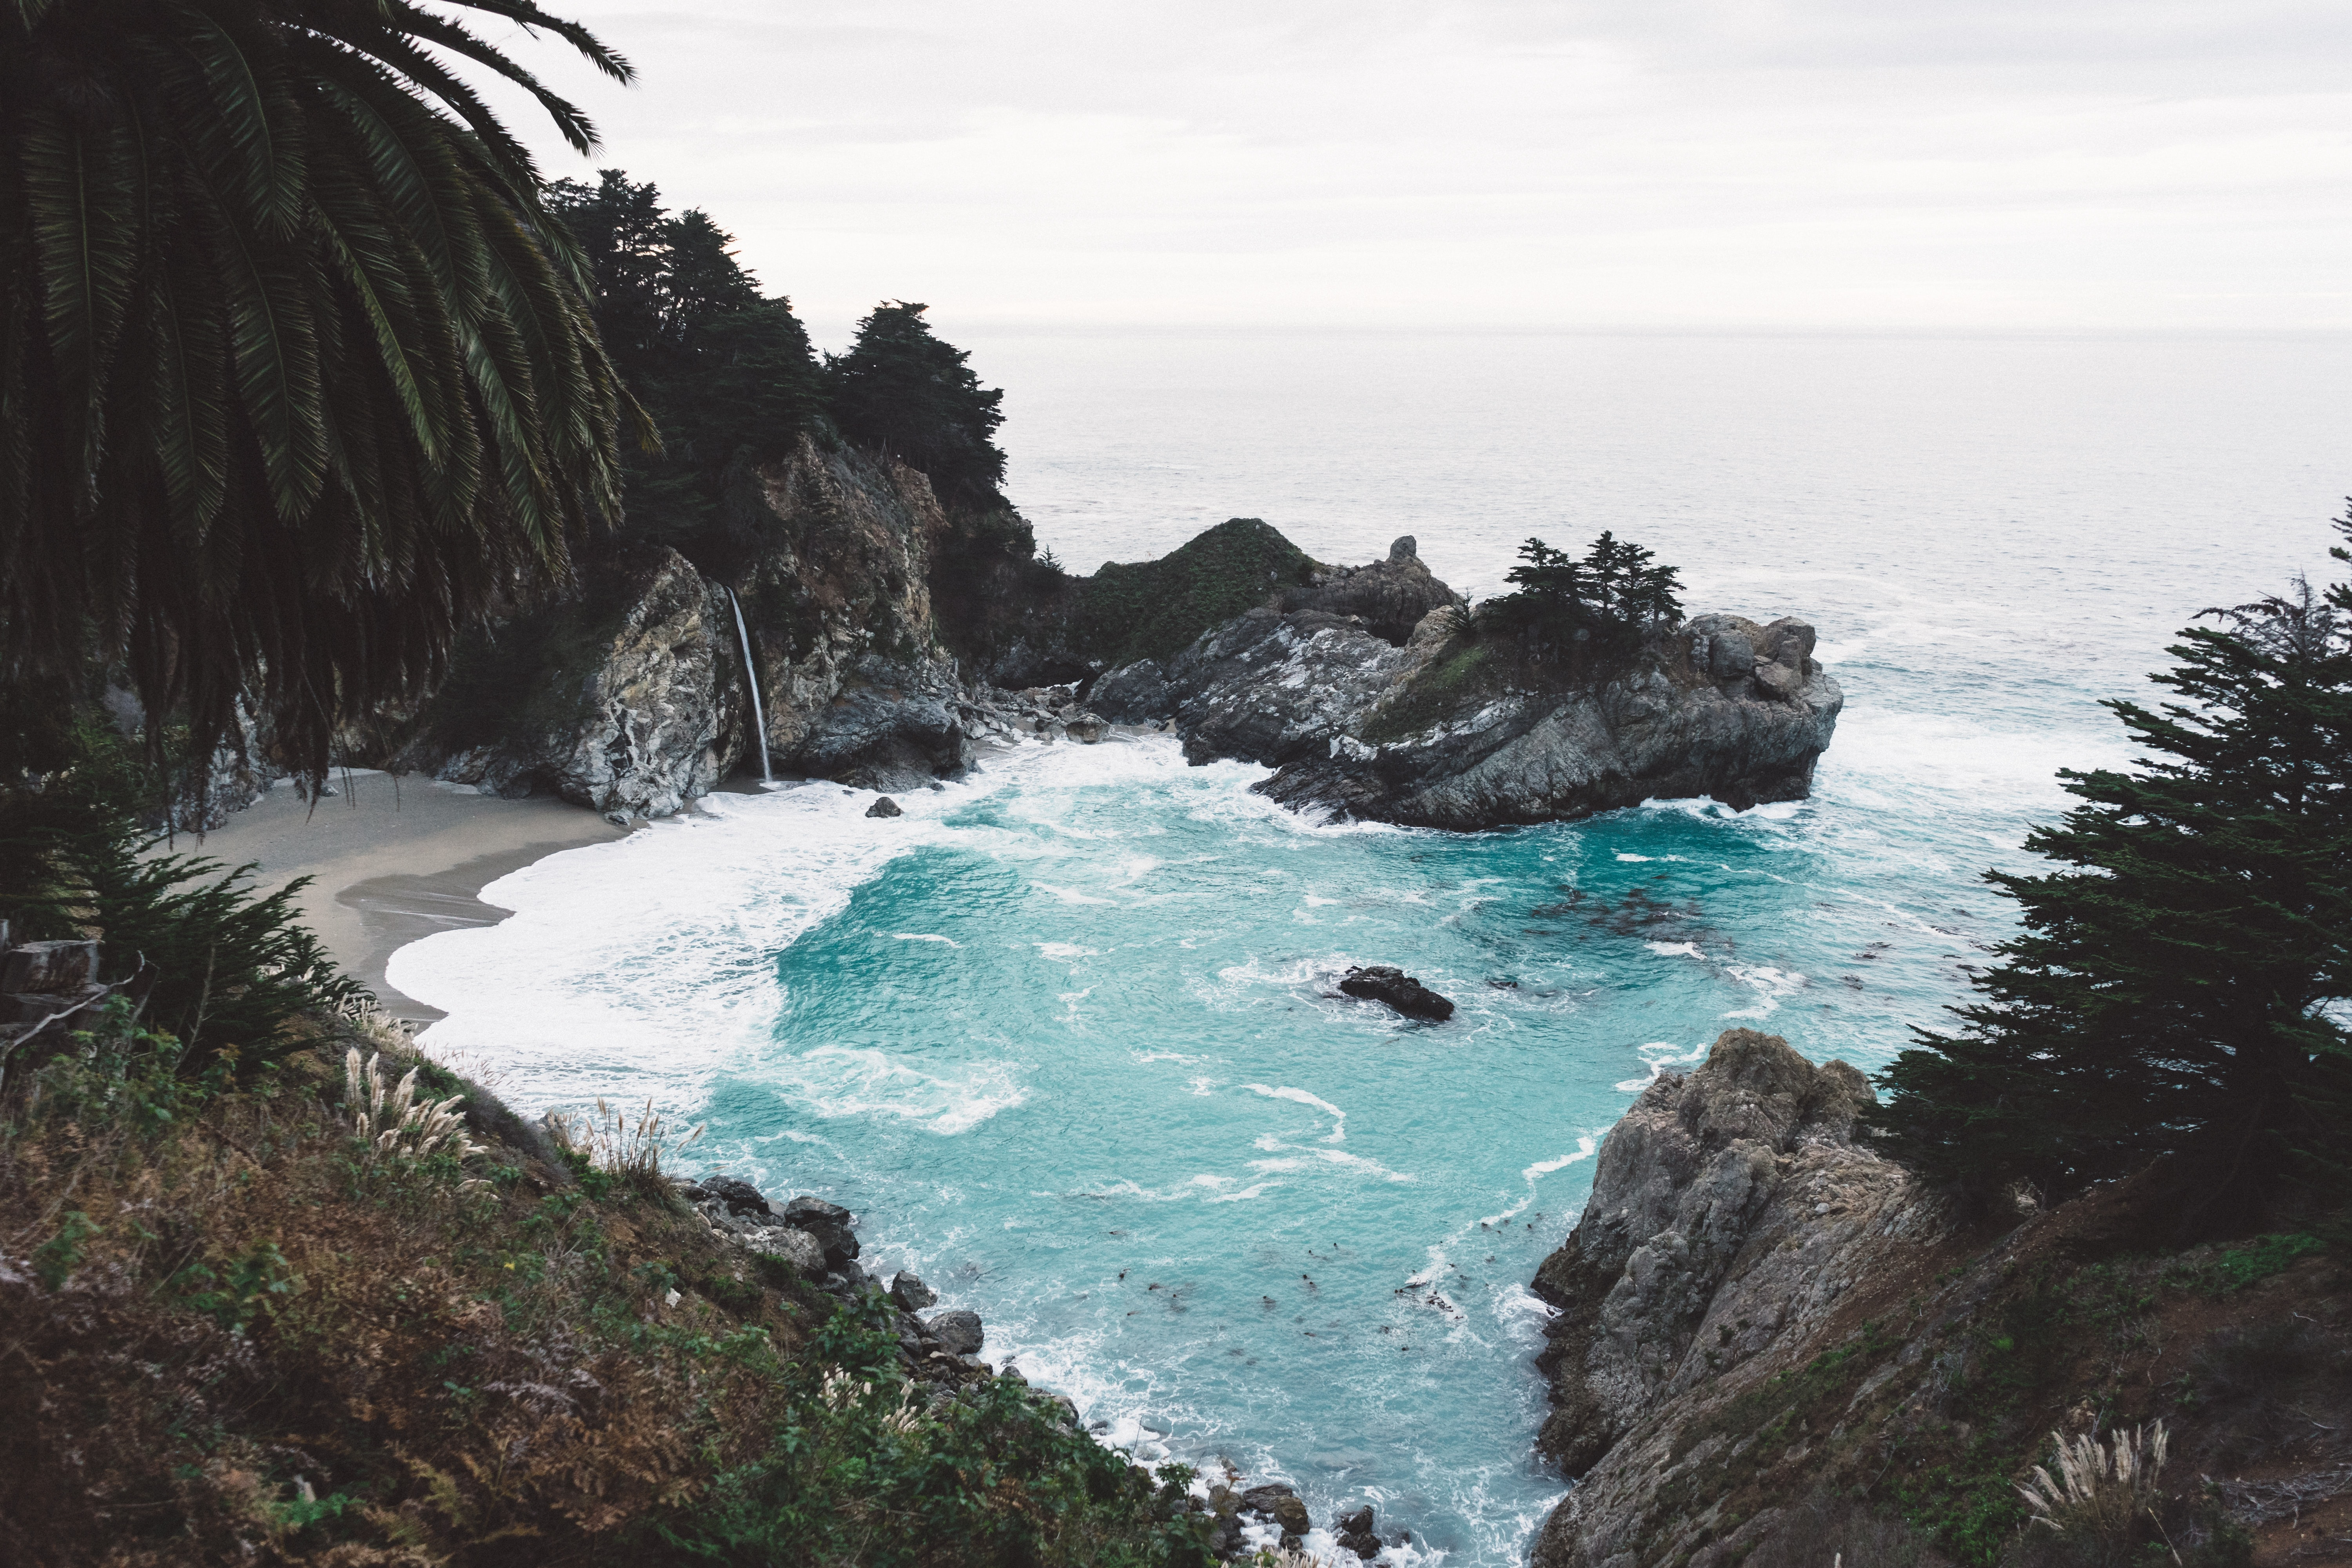 View of the ocean by from the cliff in McWay Falls